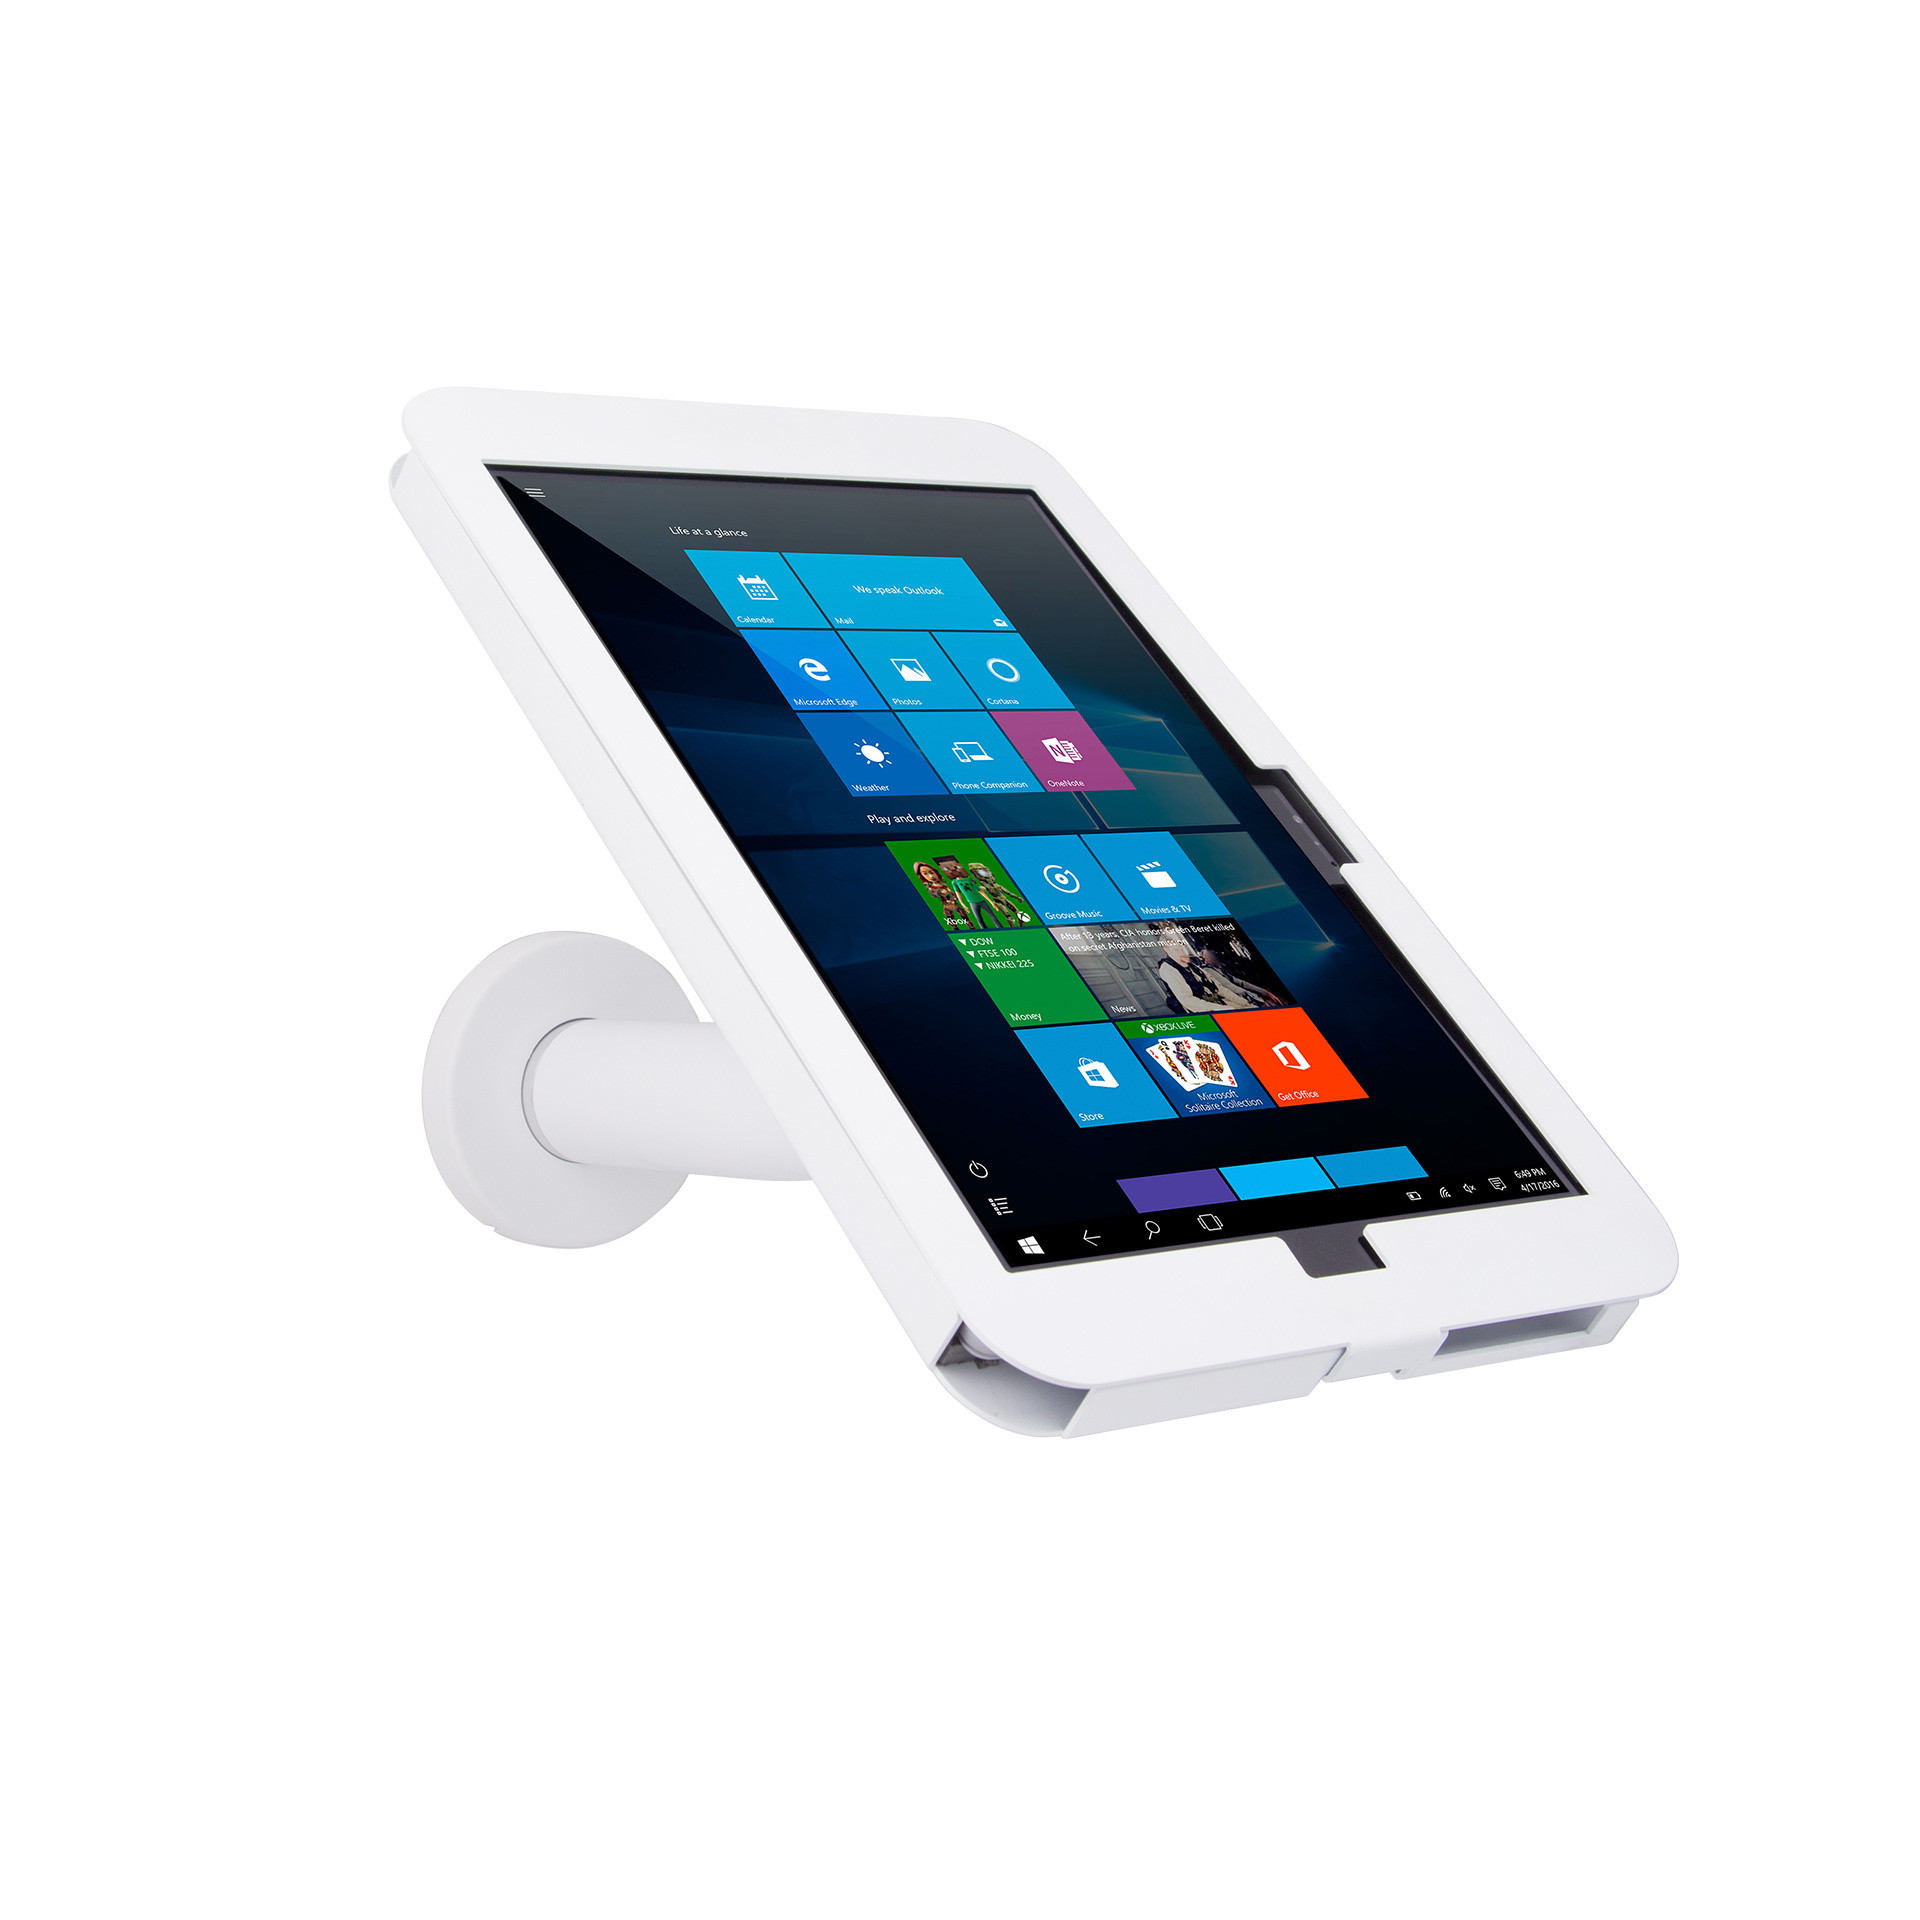 Elevate II Wall Countertop Mount Kiosk for Surface Pro 4 & 3 (White)